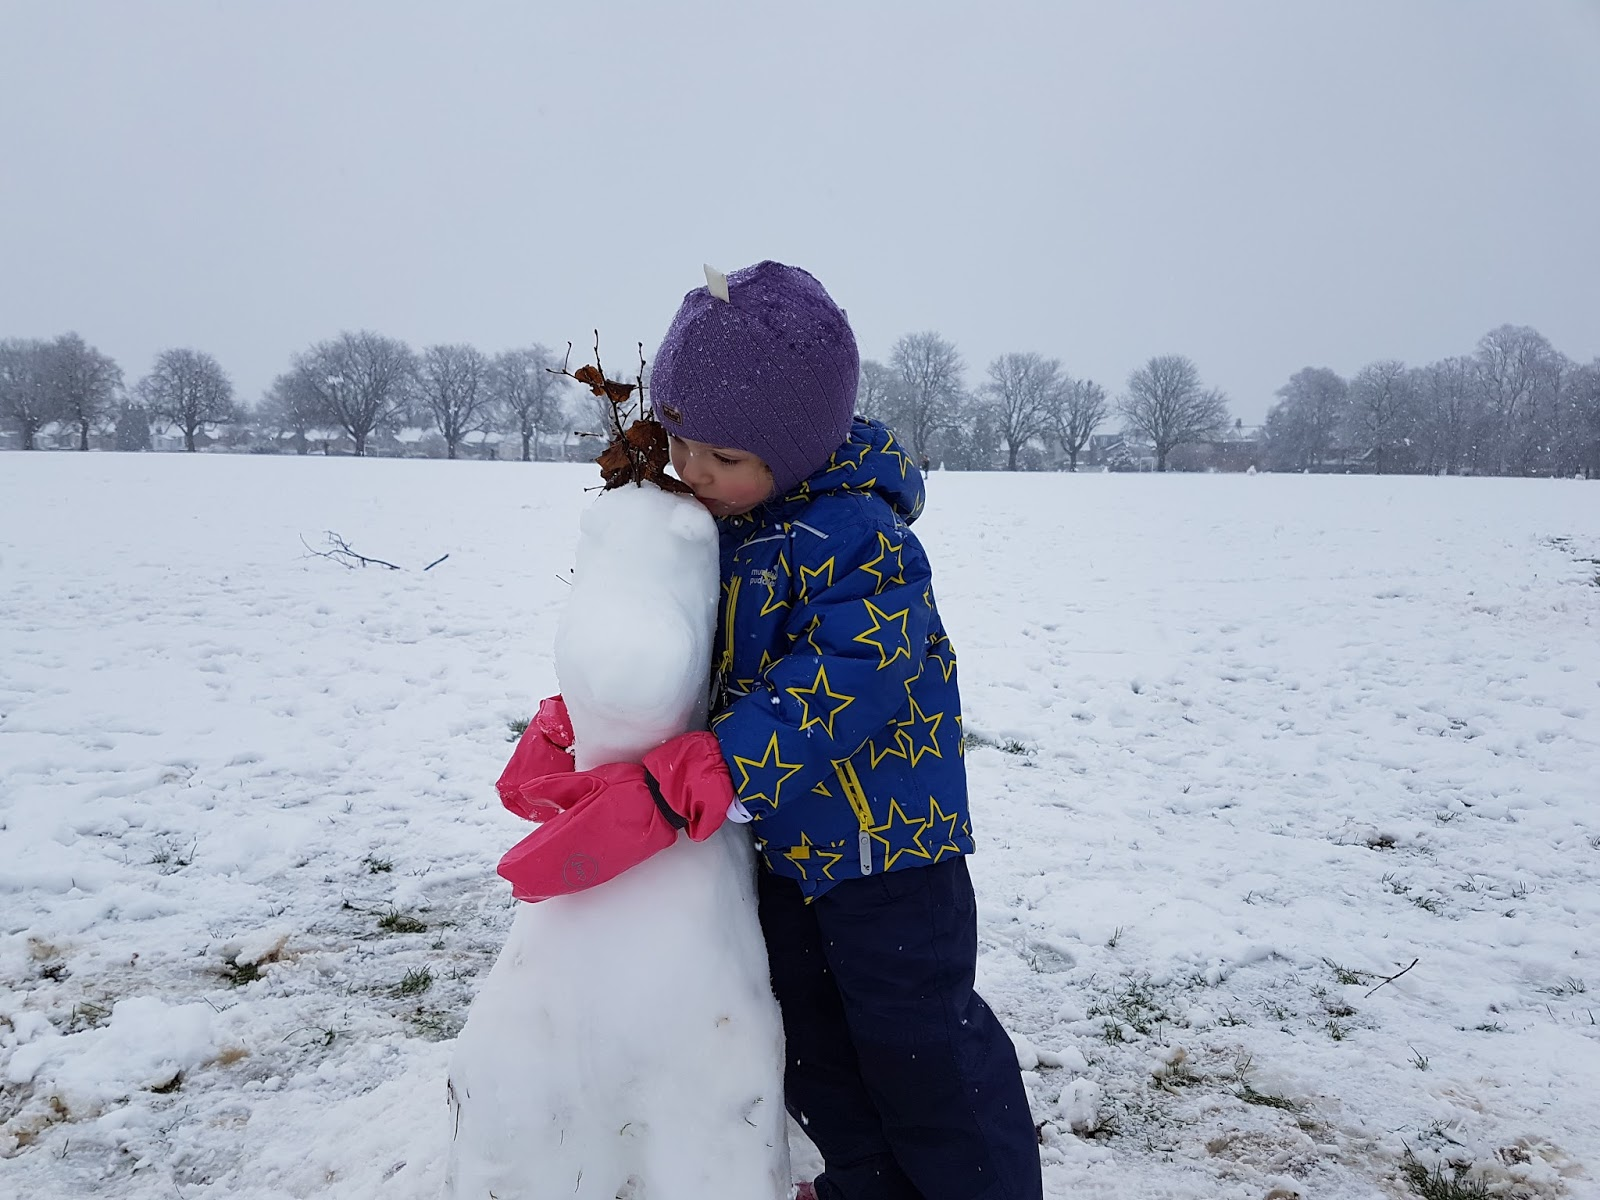 hugging the snow pony